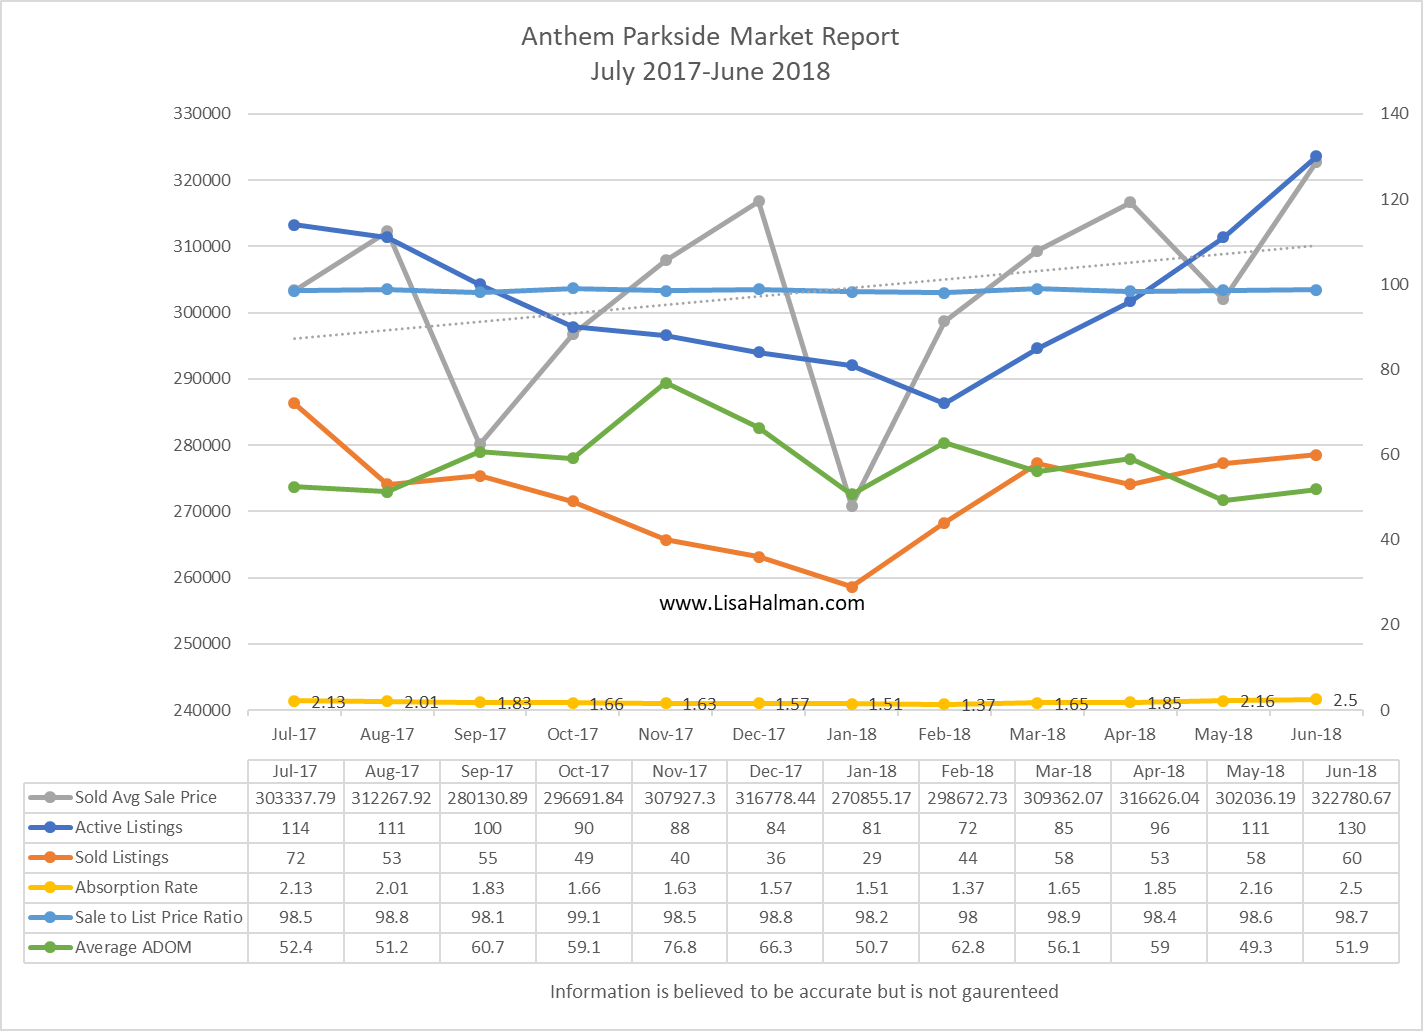 Anthem Parkside Market Update June 2018